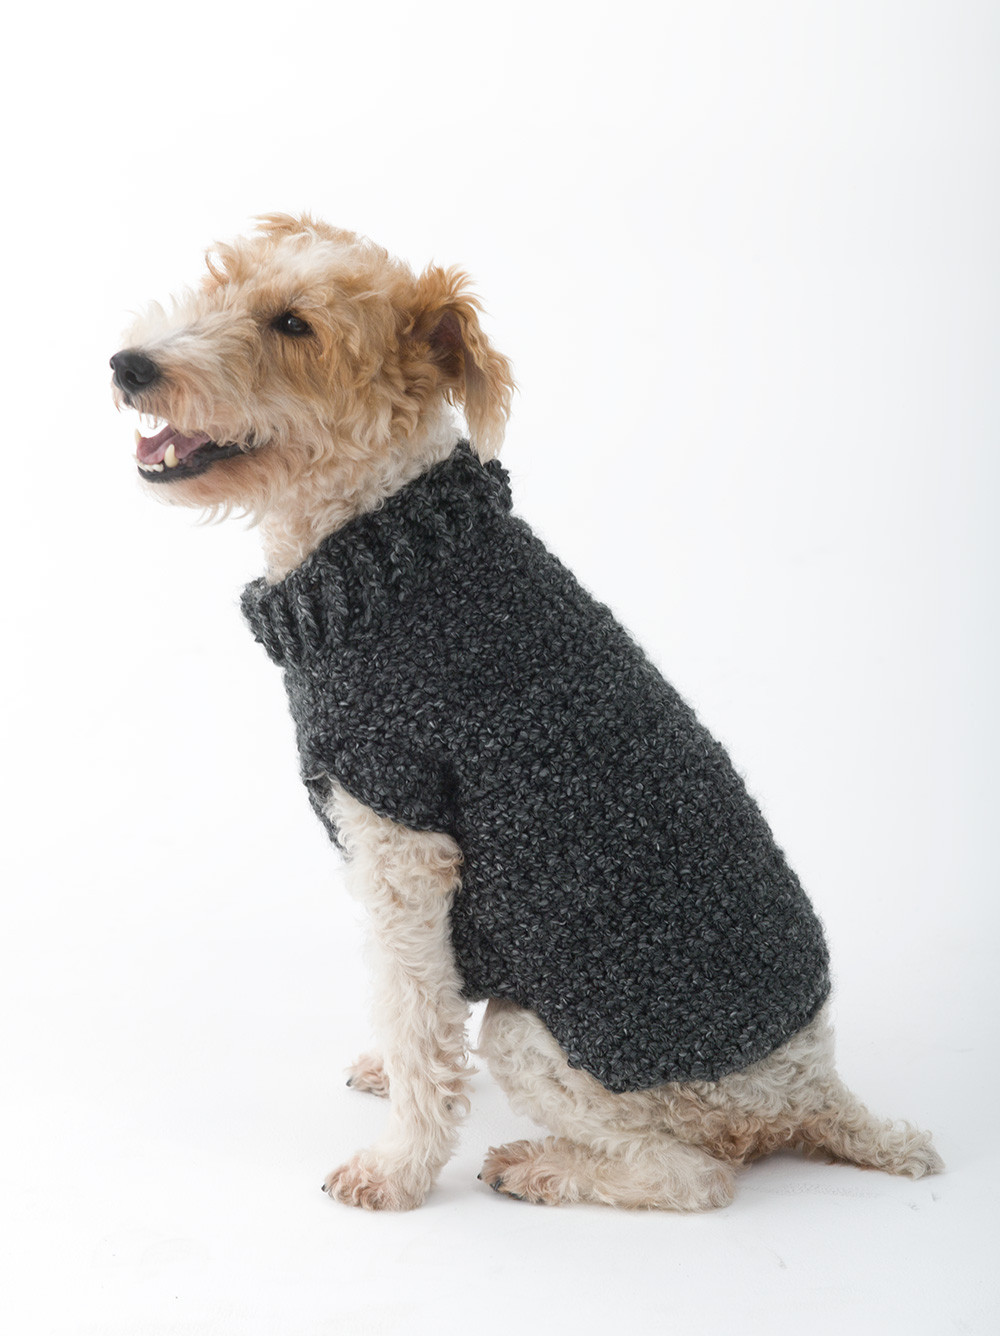 Elegant Knit Pet Sweater Pattern Gray Cardigan Sweater Knitting Patterns for Dog Sweaters for Beginners Of Luxury 41 Pictures Knitting Patterns for Dog Sweaters for Beginners